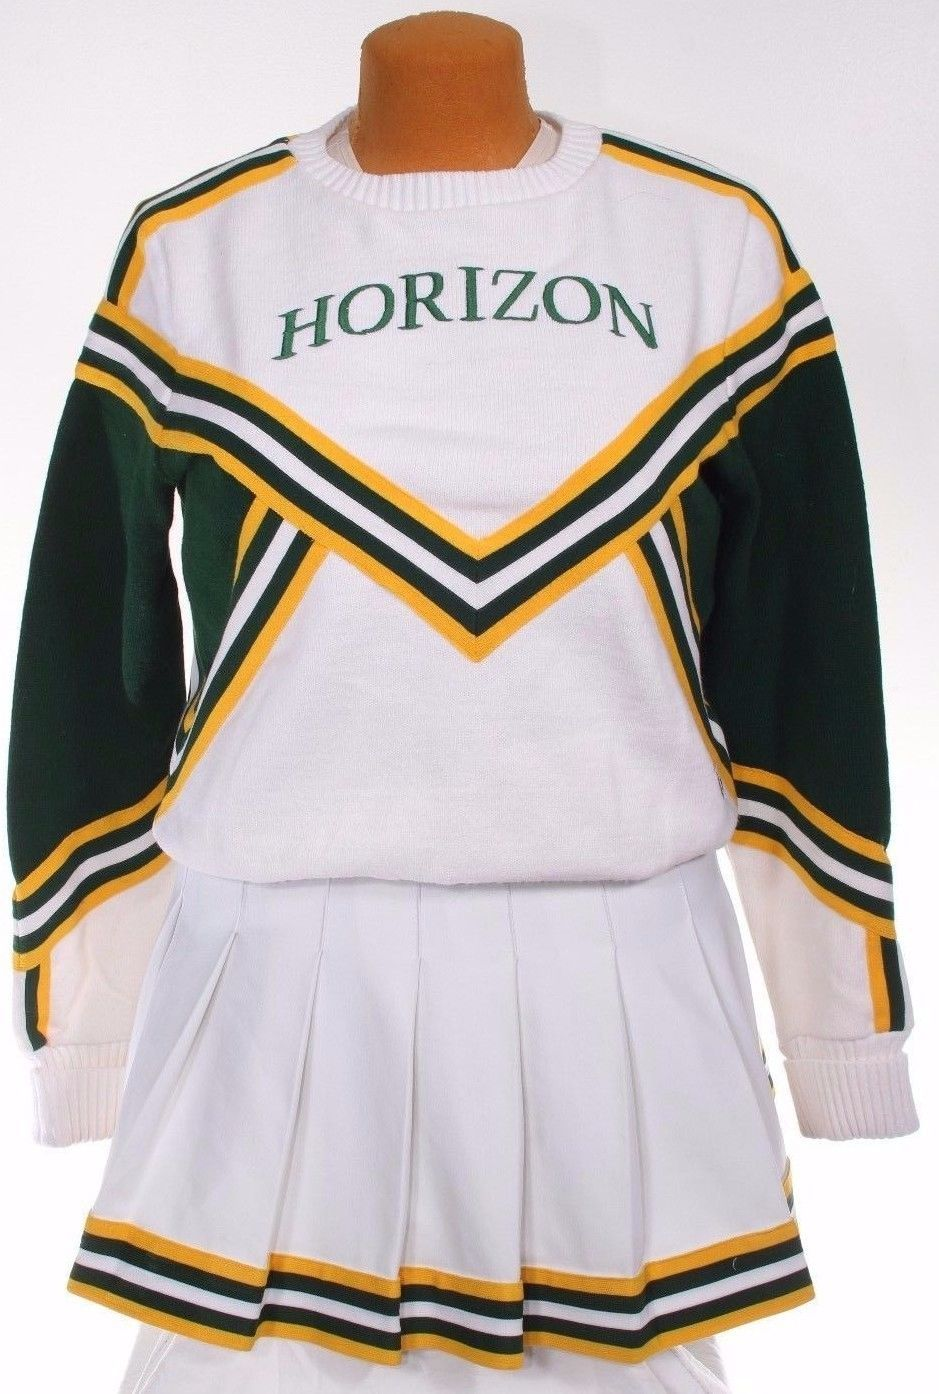 Cheerleader cheerleading uniform outfit sweater skirt green white gold  vintage